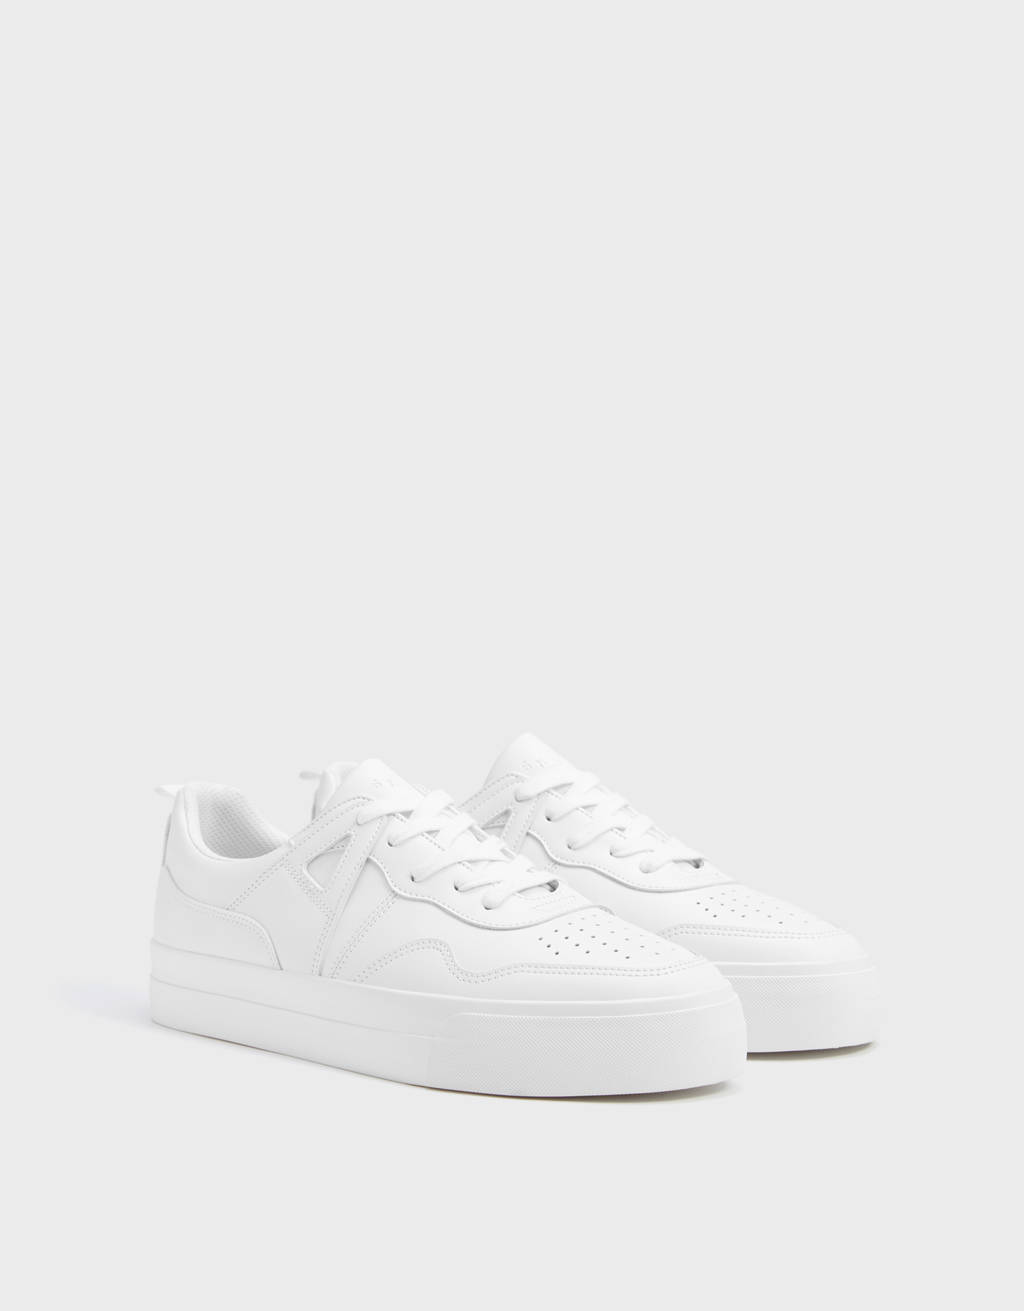 e4df1e03d Trainers - Shoes - COLLECTION - MEN - Bershka United Kingdom